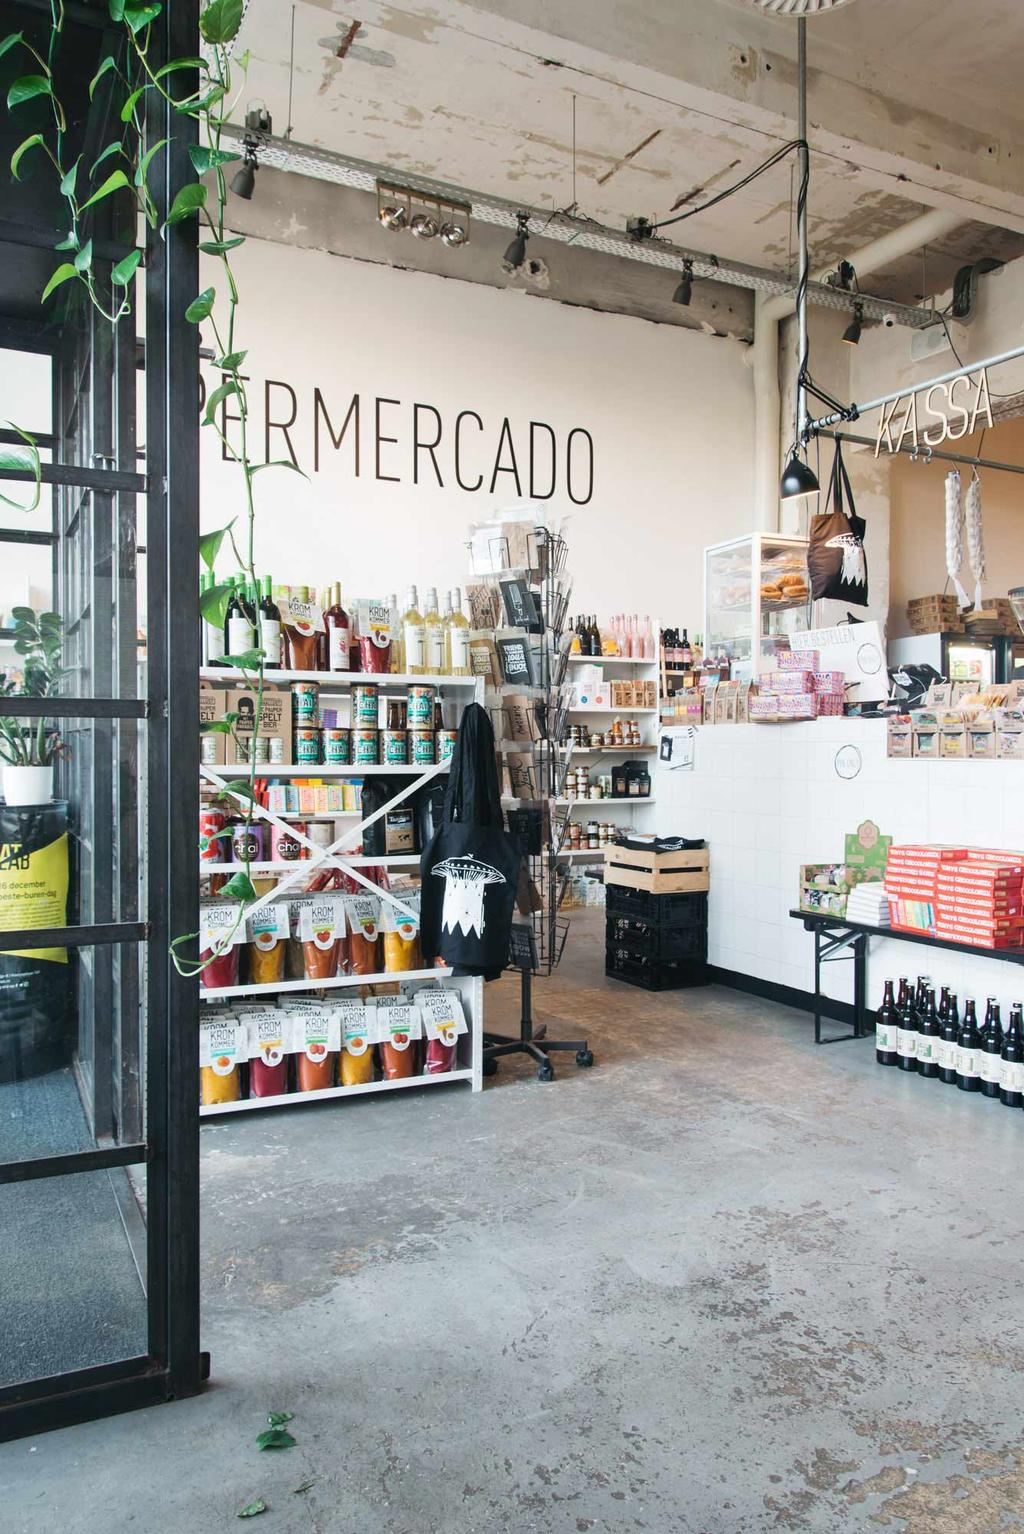 bio supermercado onder de leidingstraat remade with love